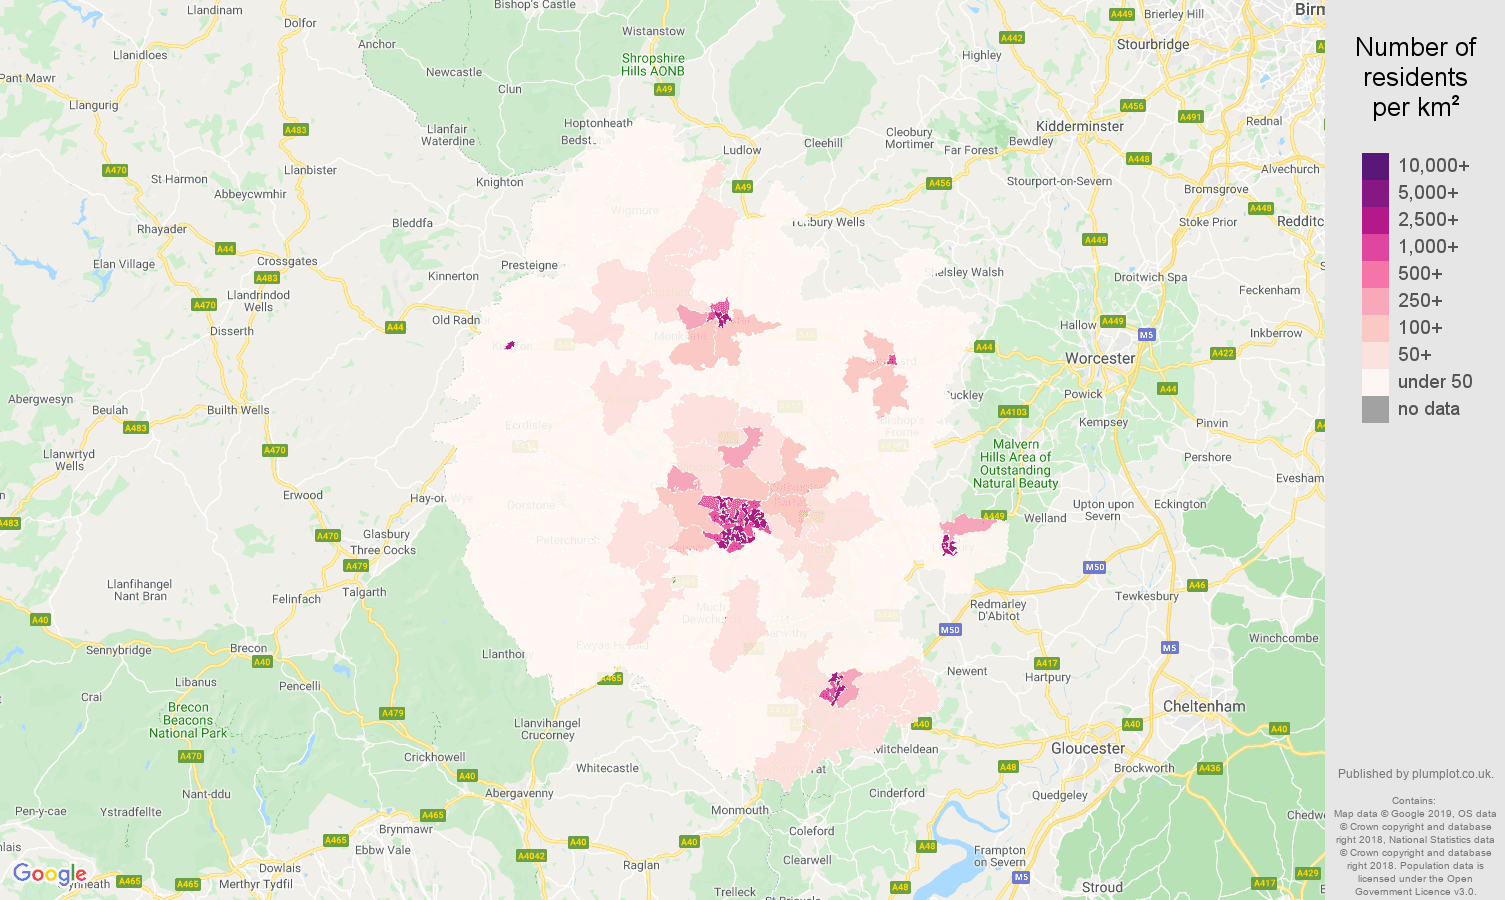 Hereford population density map